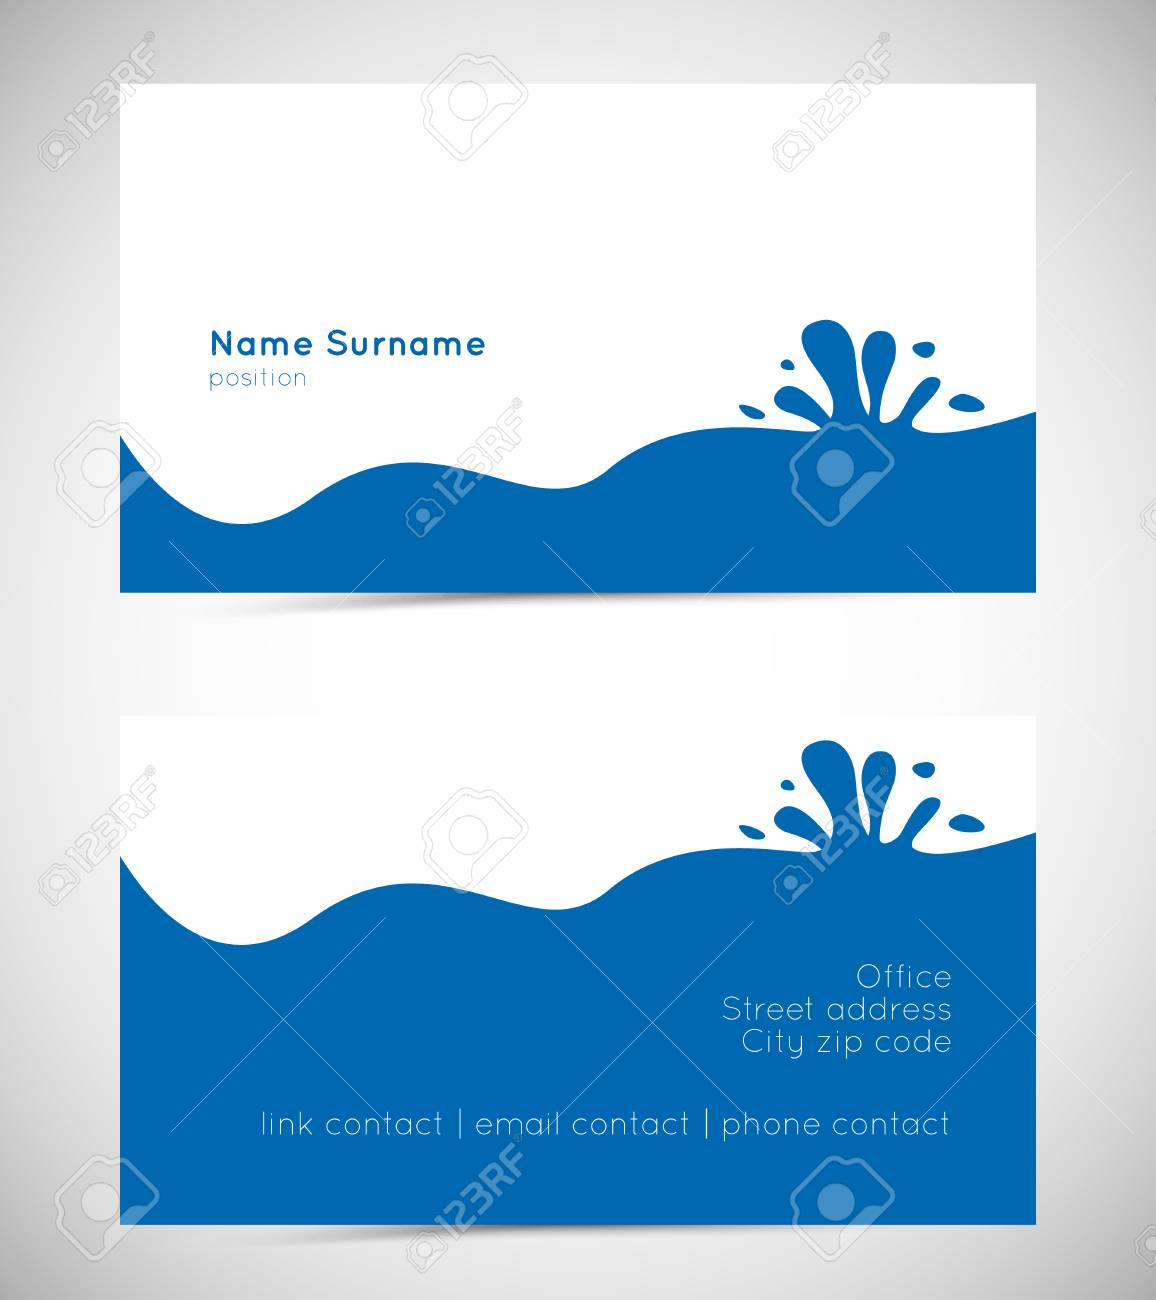 Business card template with water wave and splatter royalty free banco de imagens business card template with water wave and splatter reheart Gallery